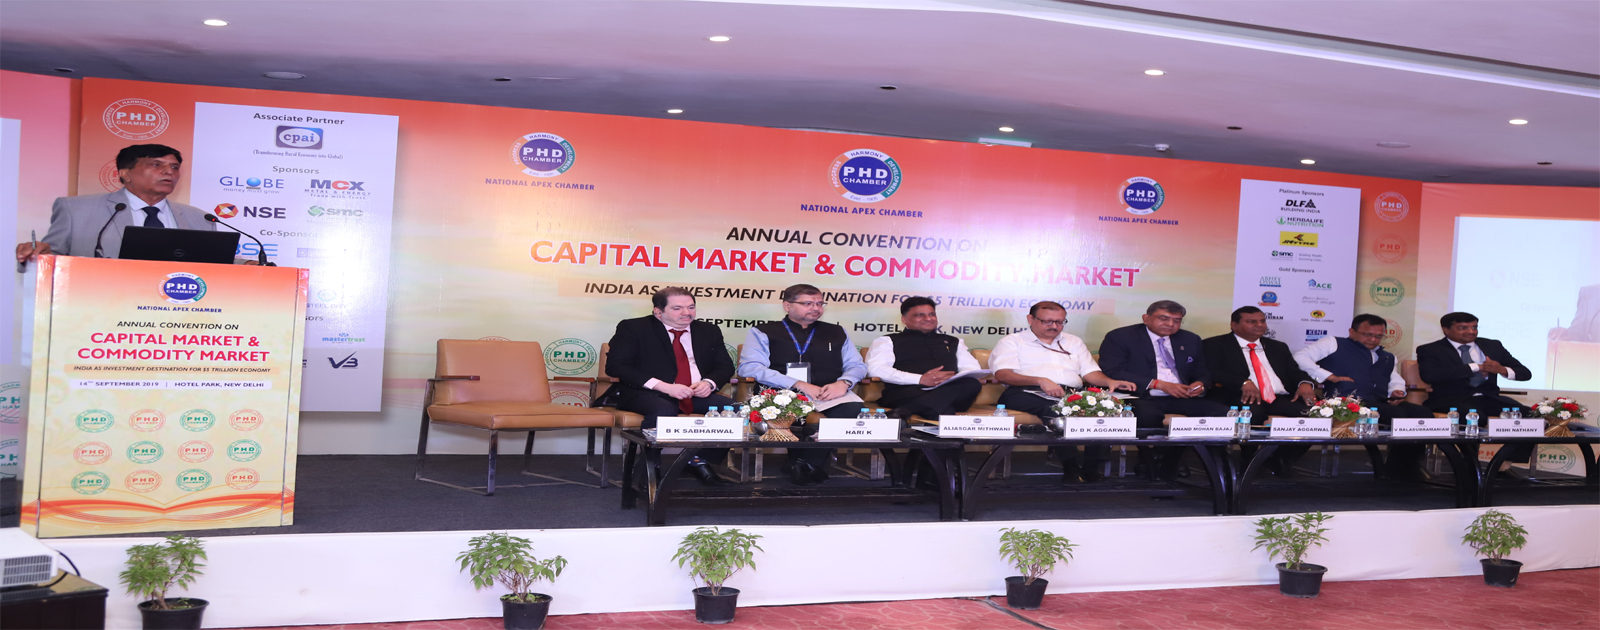 Annual Convention on Capital Market & Commodity Market